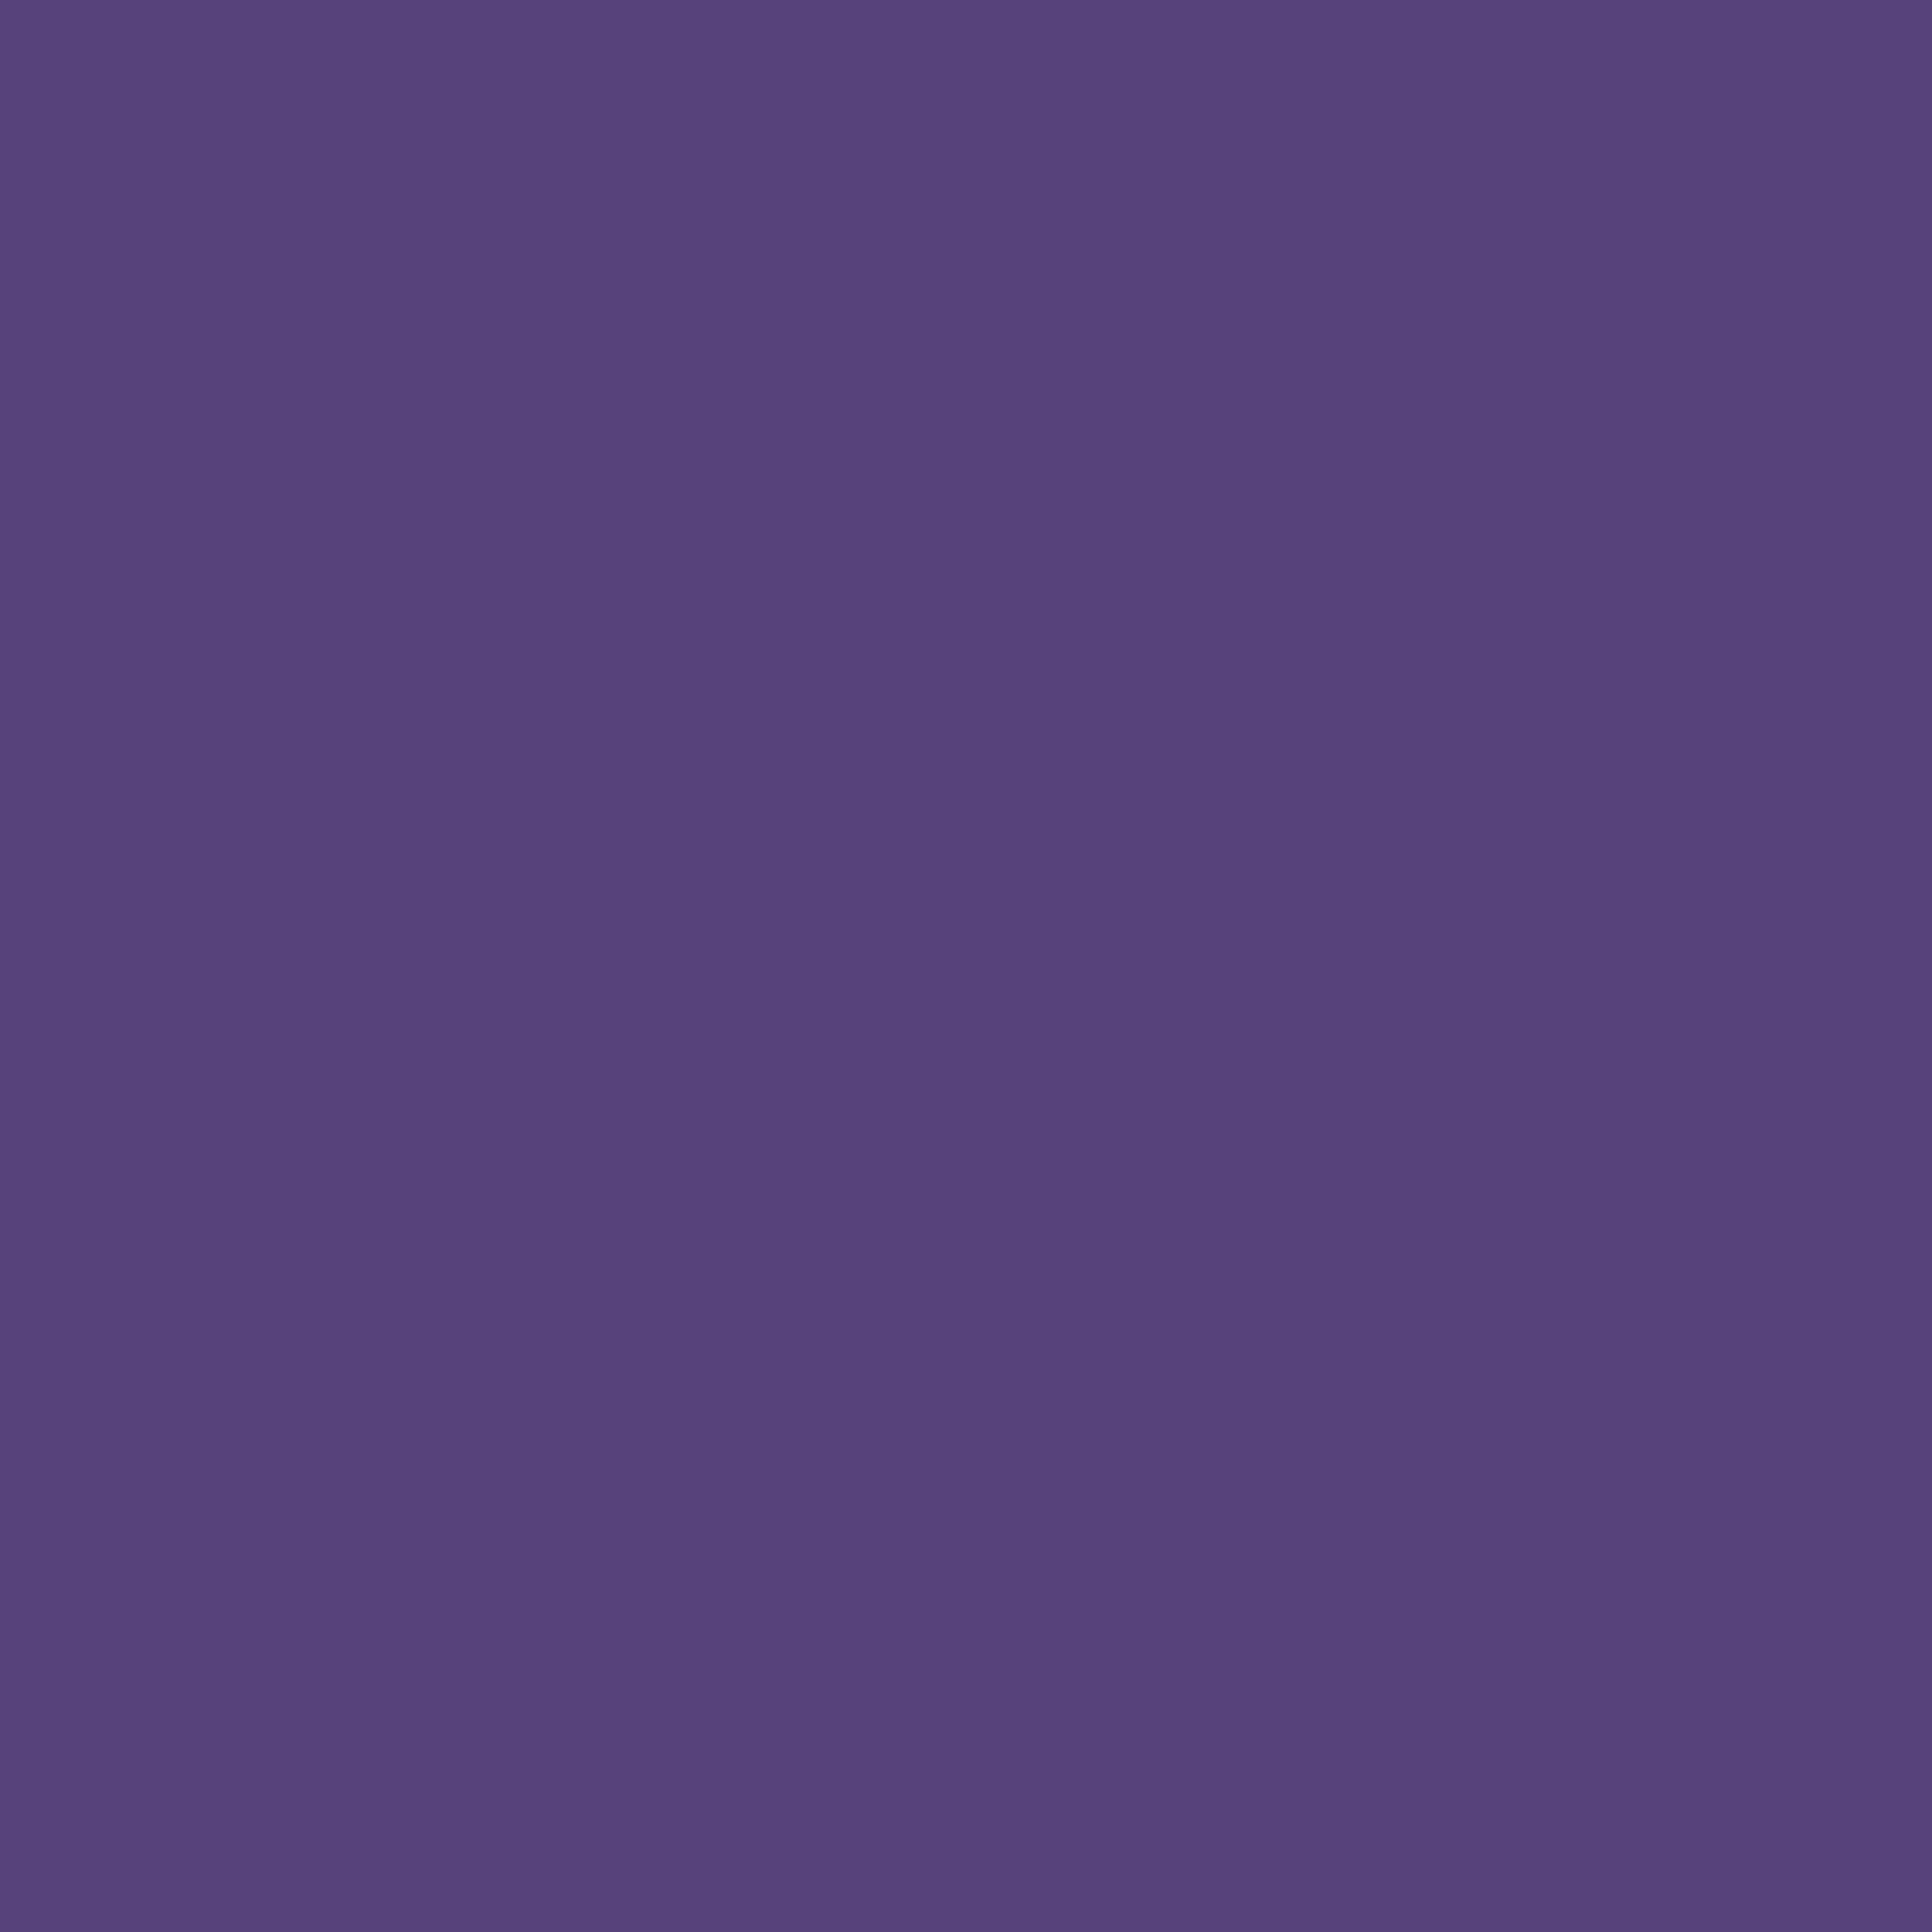 2048x2048 Cyber Grape Solid Color Background